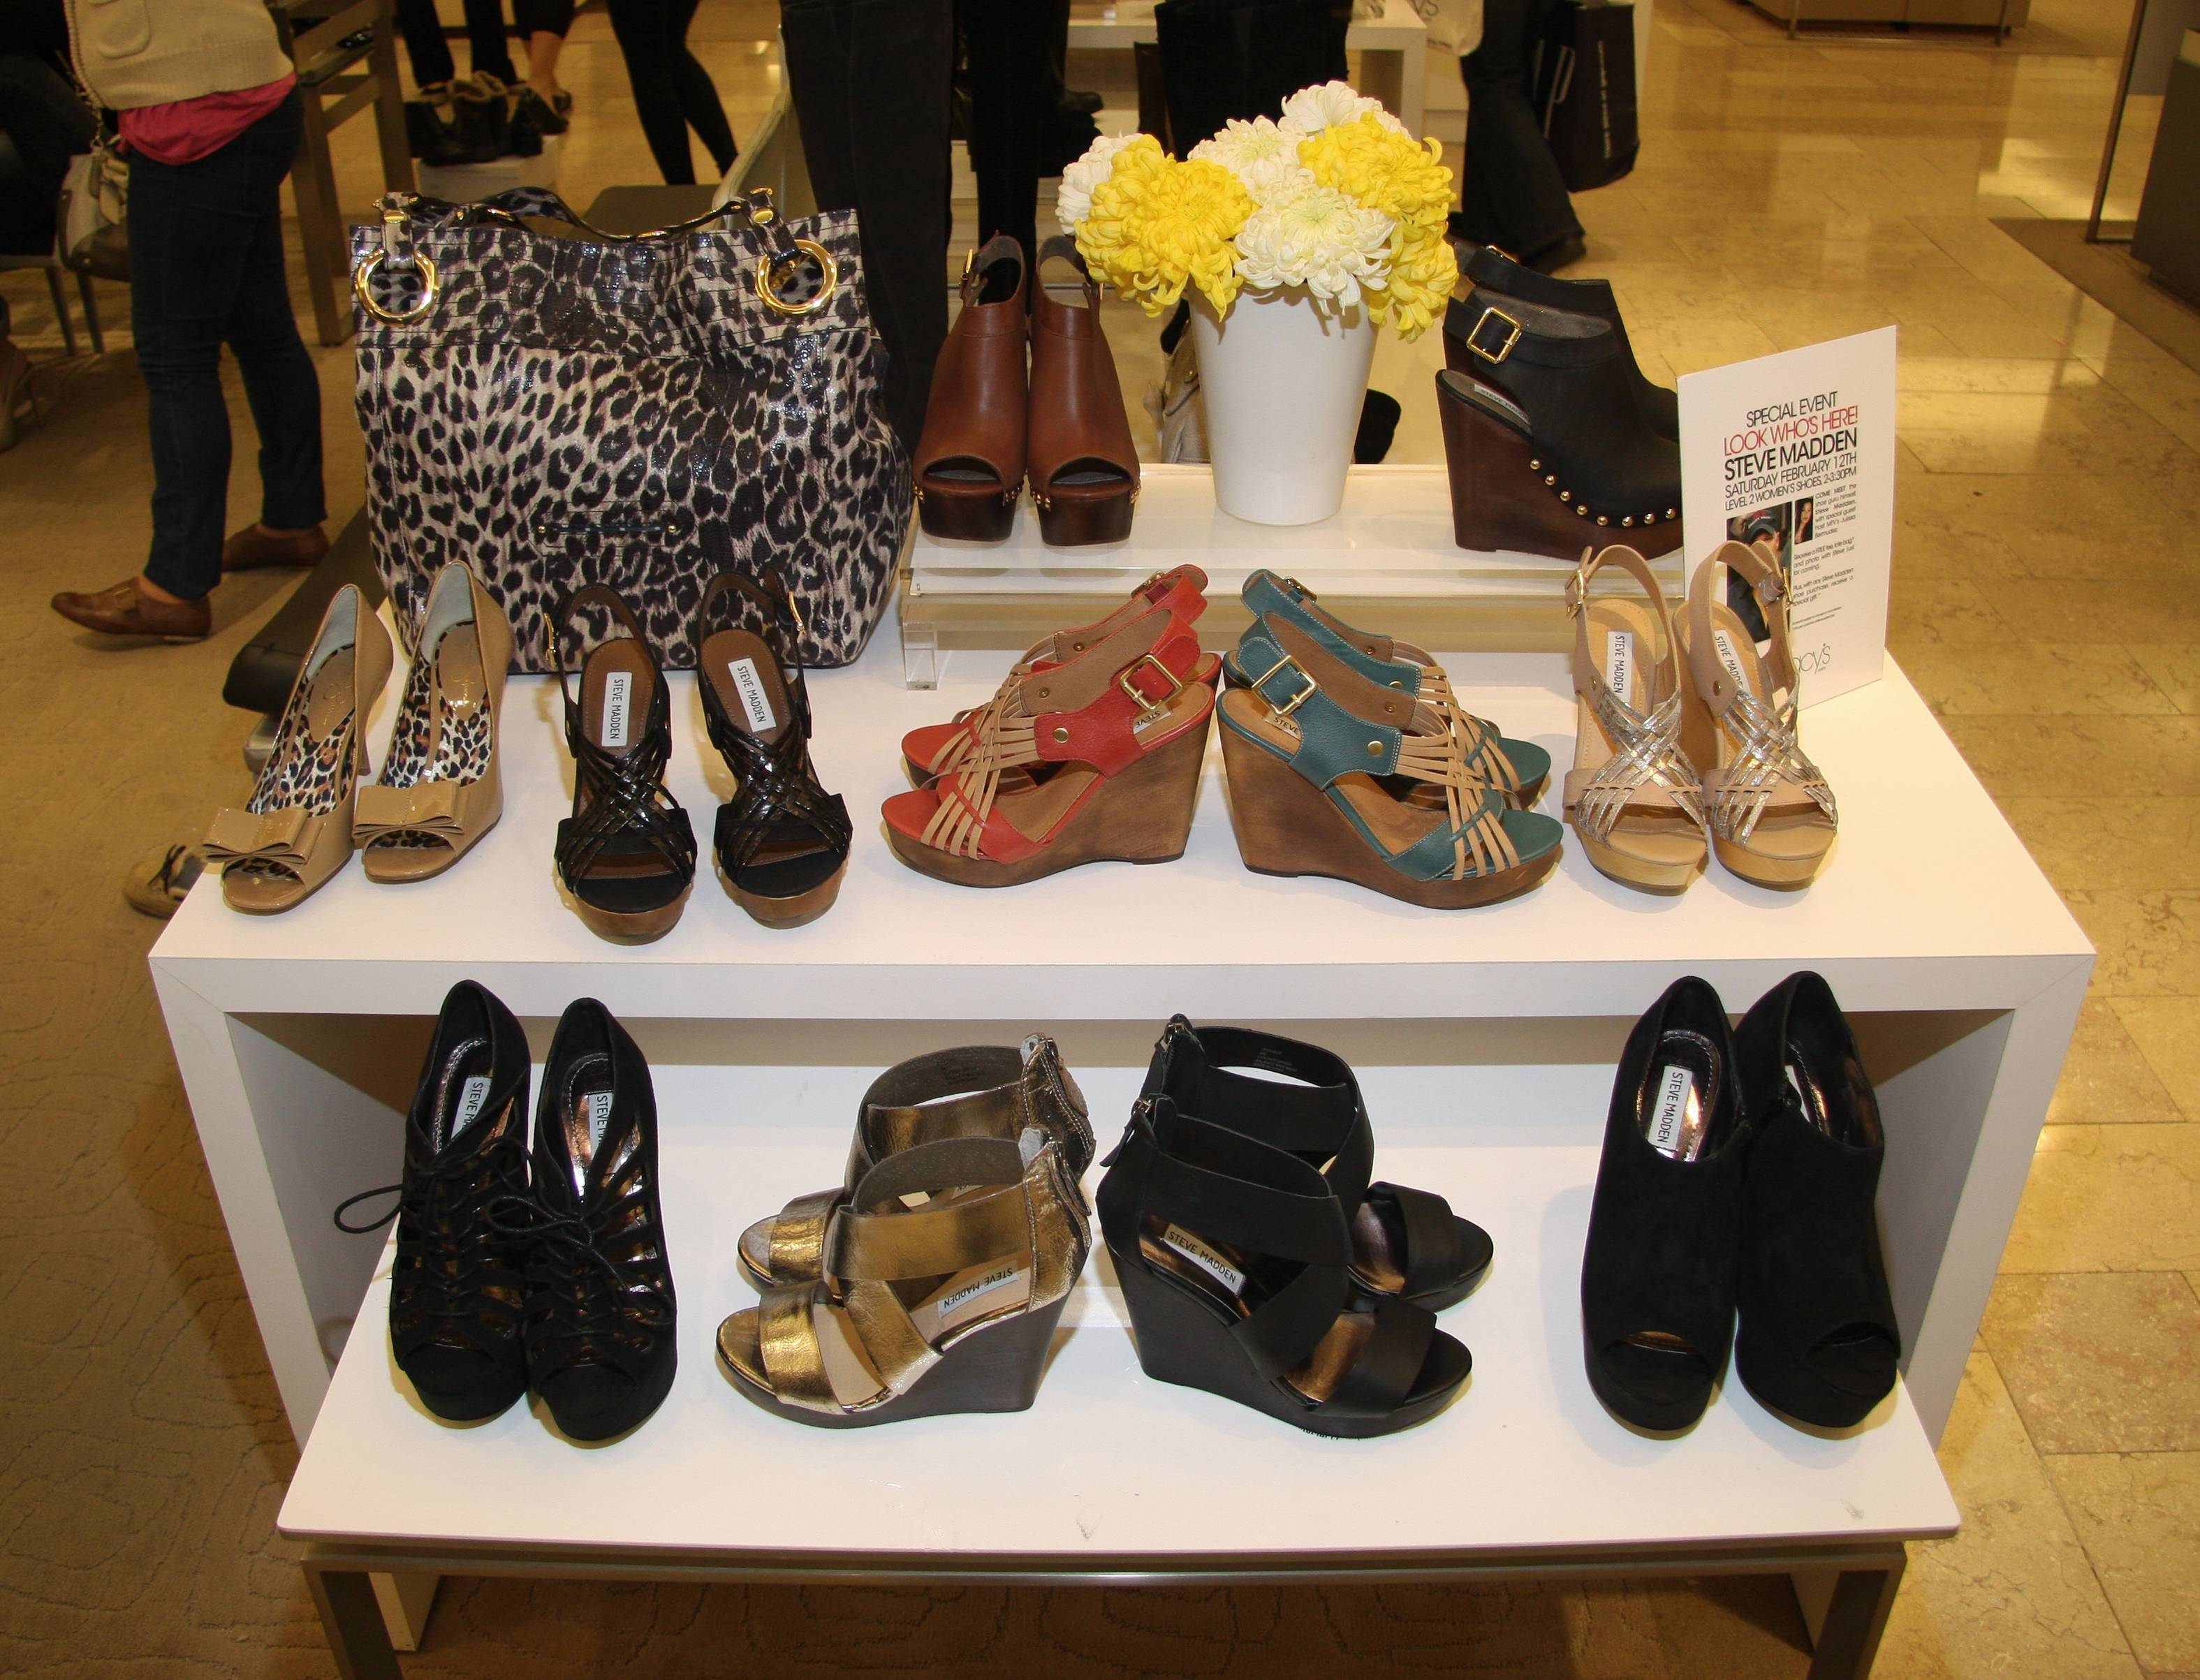 15c2012570c Haute Event: Steve Madden Makes Special Appearance at Macy's Union ...